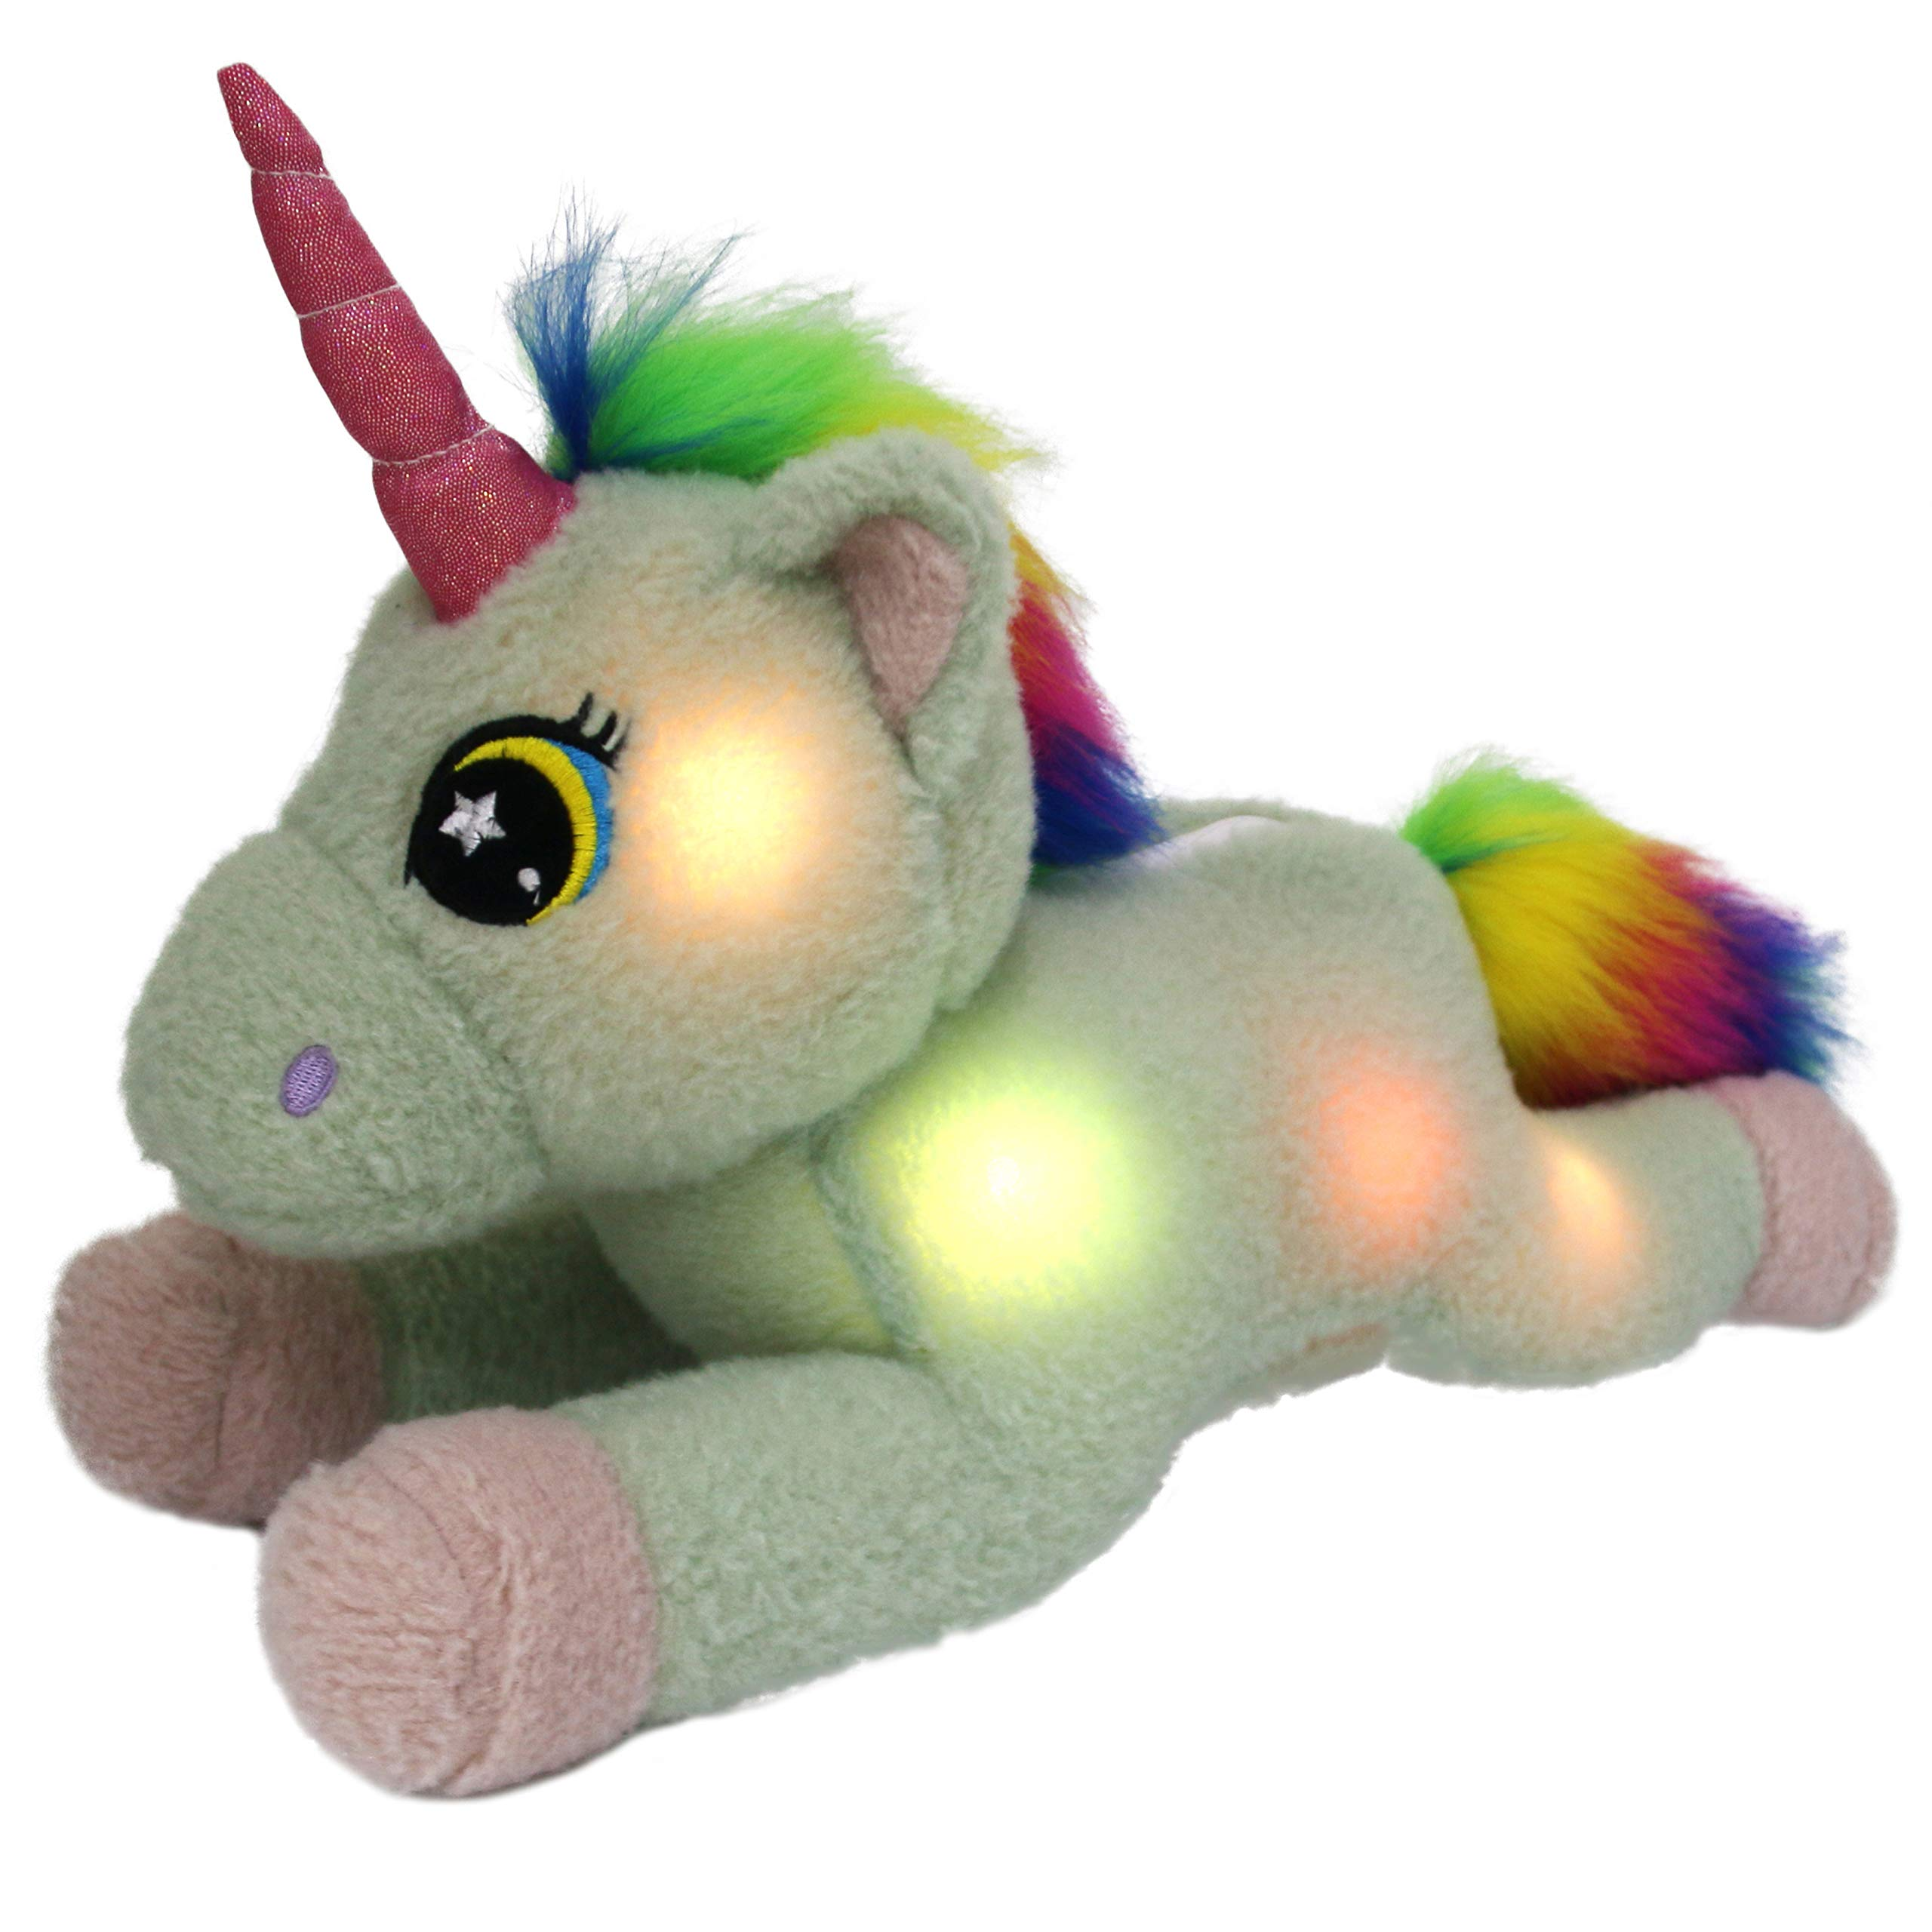 Bstaofy LED Unicorn Stuffed Animals Glow Adorable Plush Toys with Rainbow Mane and Tail Gifts for Kids on Xmas Halloween Birthday Festival Occasions, 16 Inch (Light Green) by Bstaofy